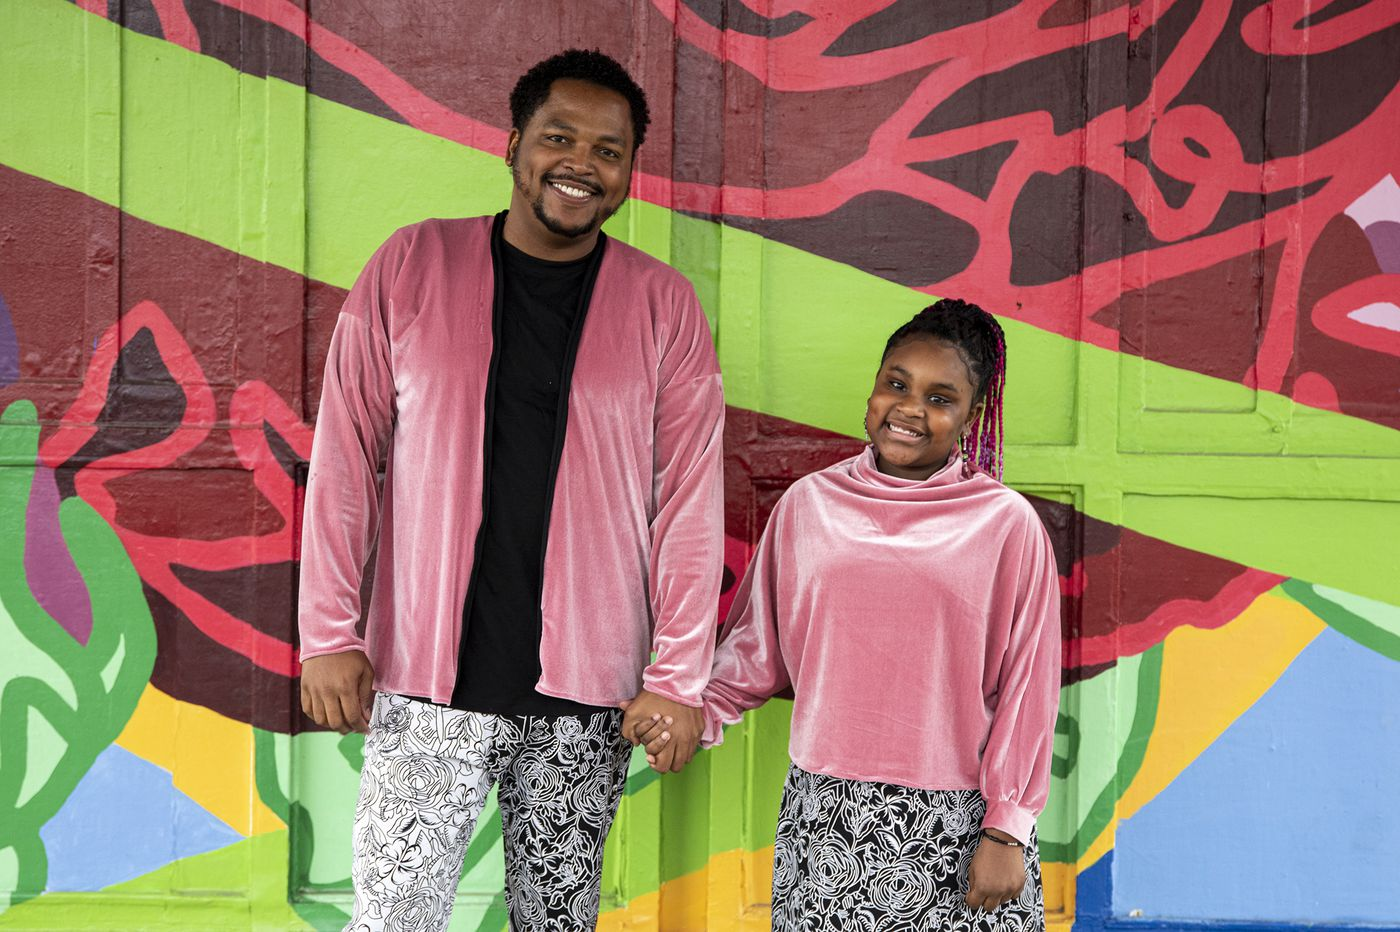 To bond with his daughter, this Philly dad taught himself how to sew. Now, he makes all her outfits (and some for himself, too). | We The People